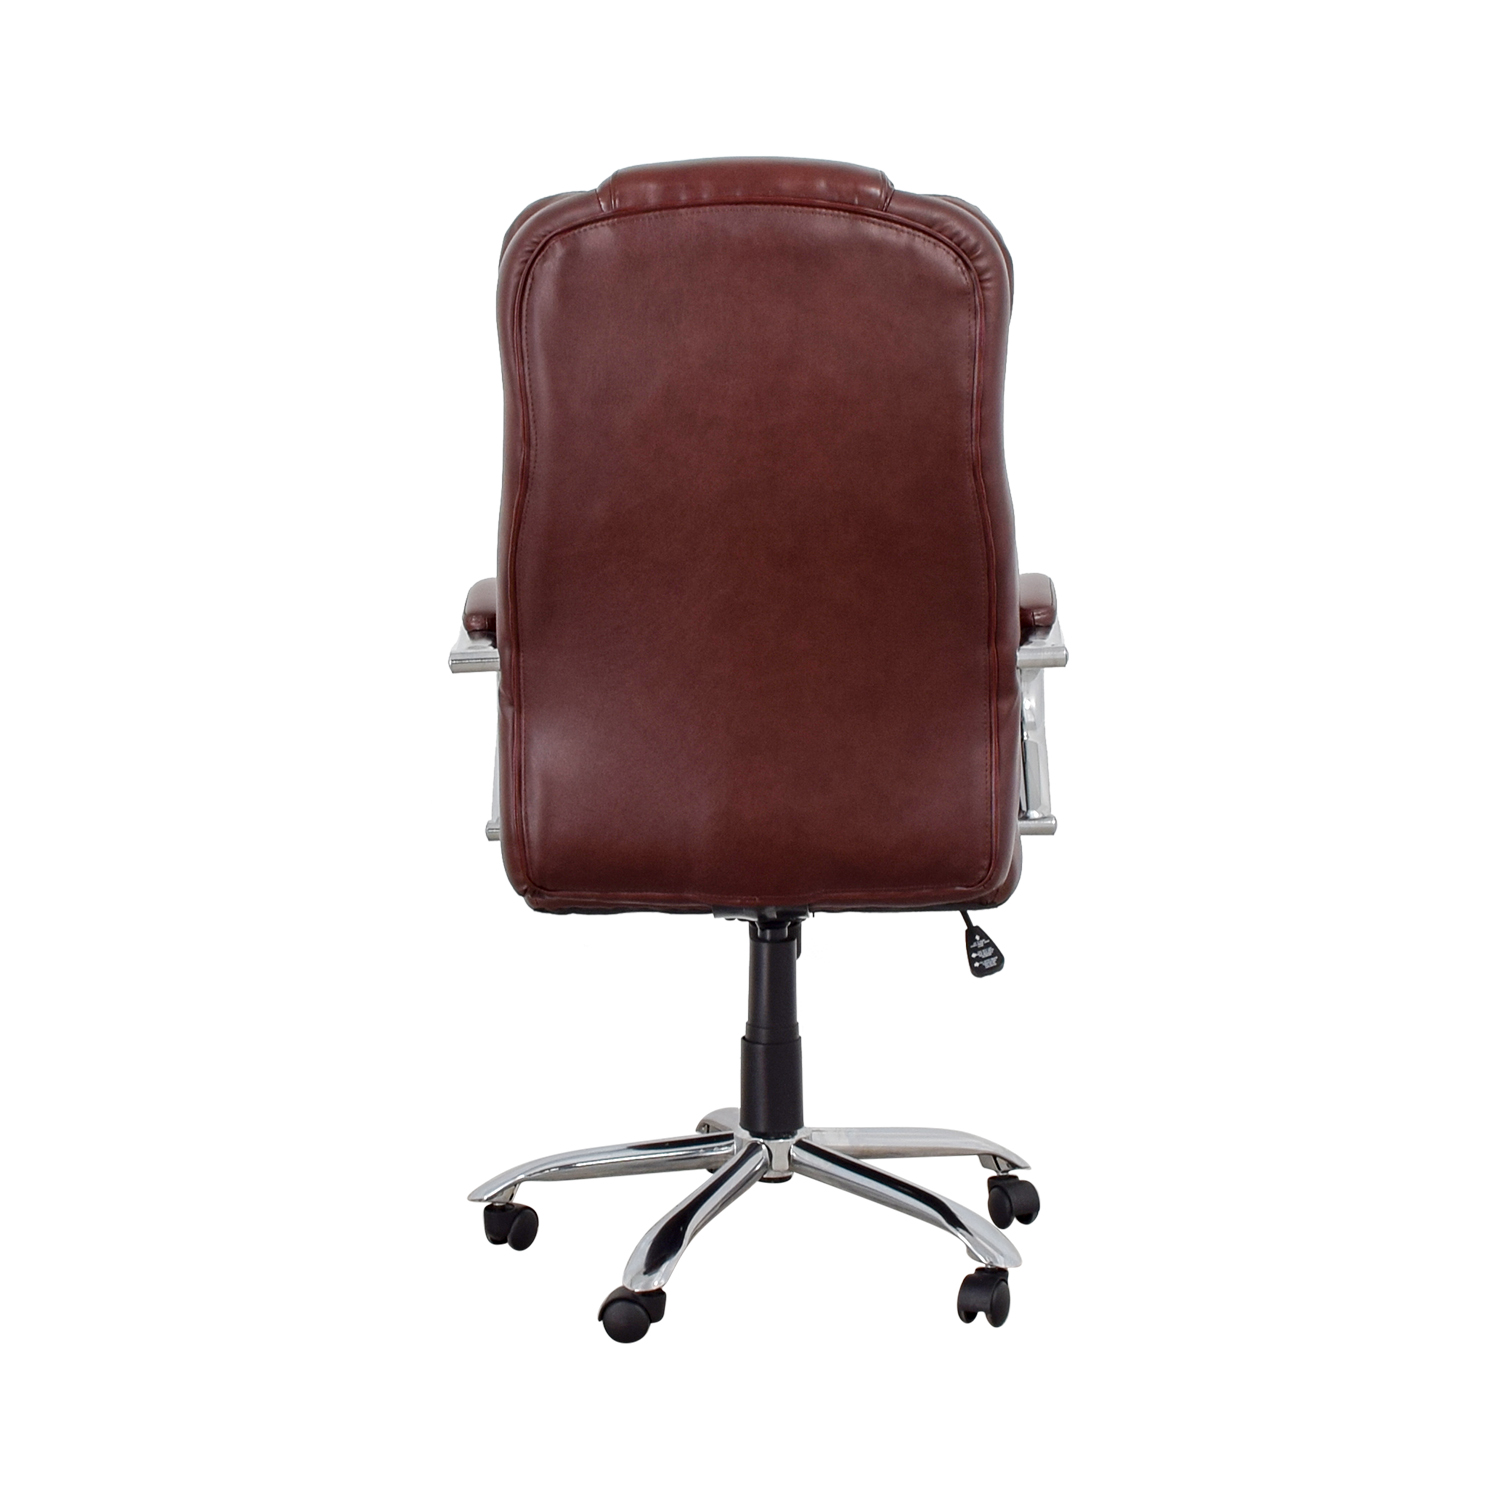 Best Office Best Office Burgundy Office Chair nyc